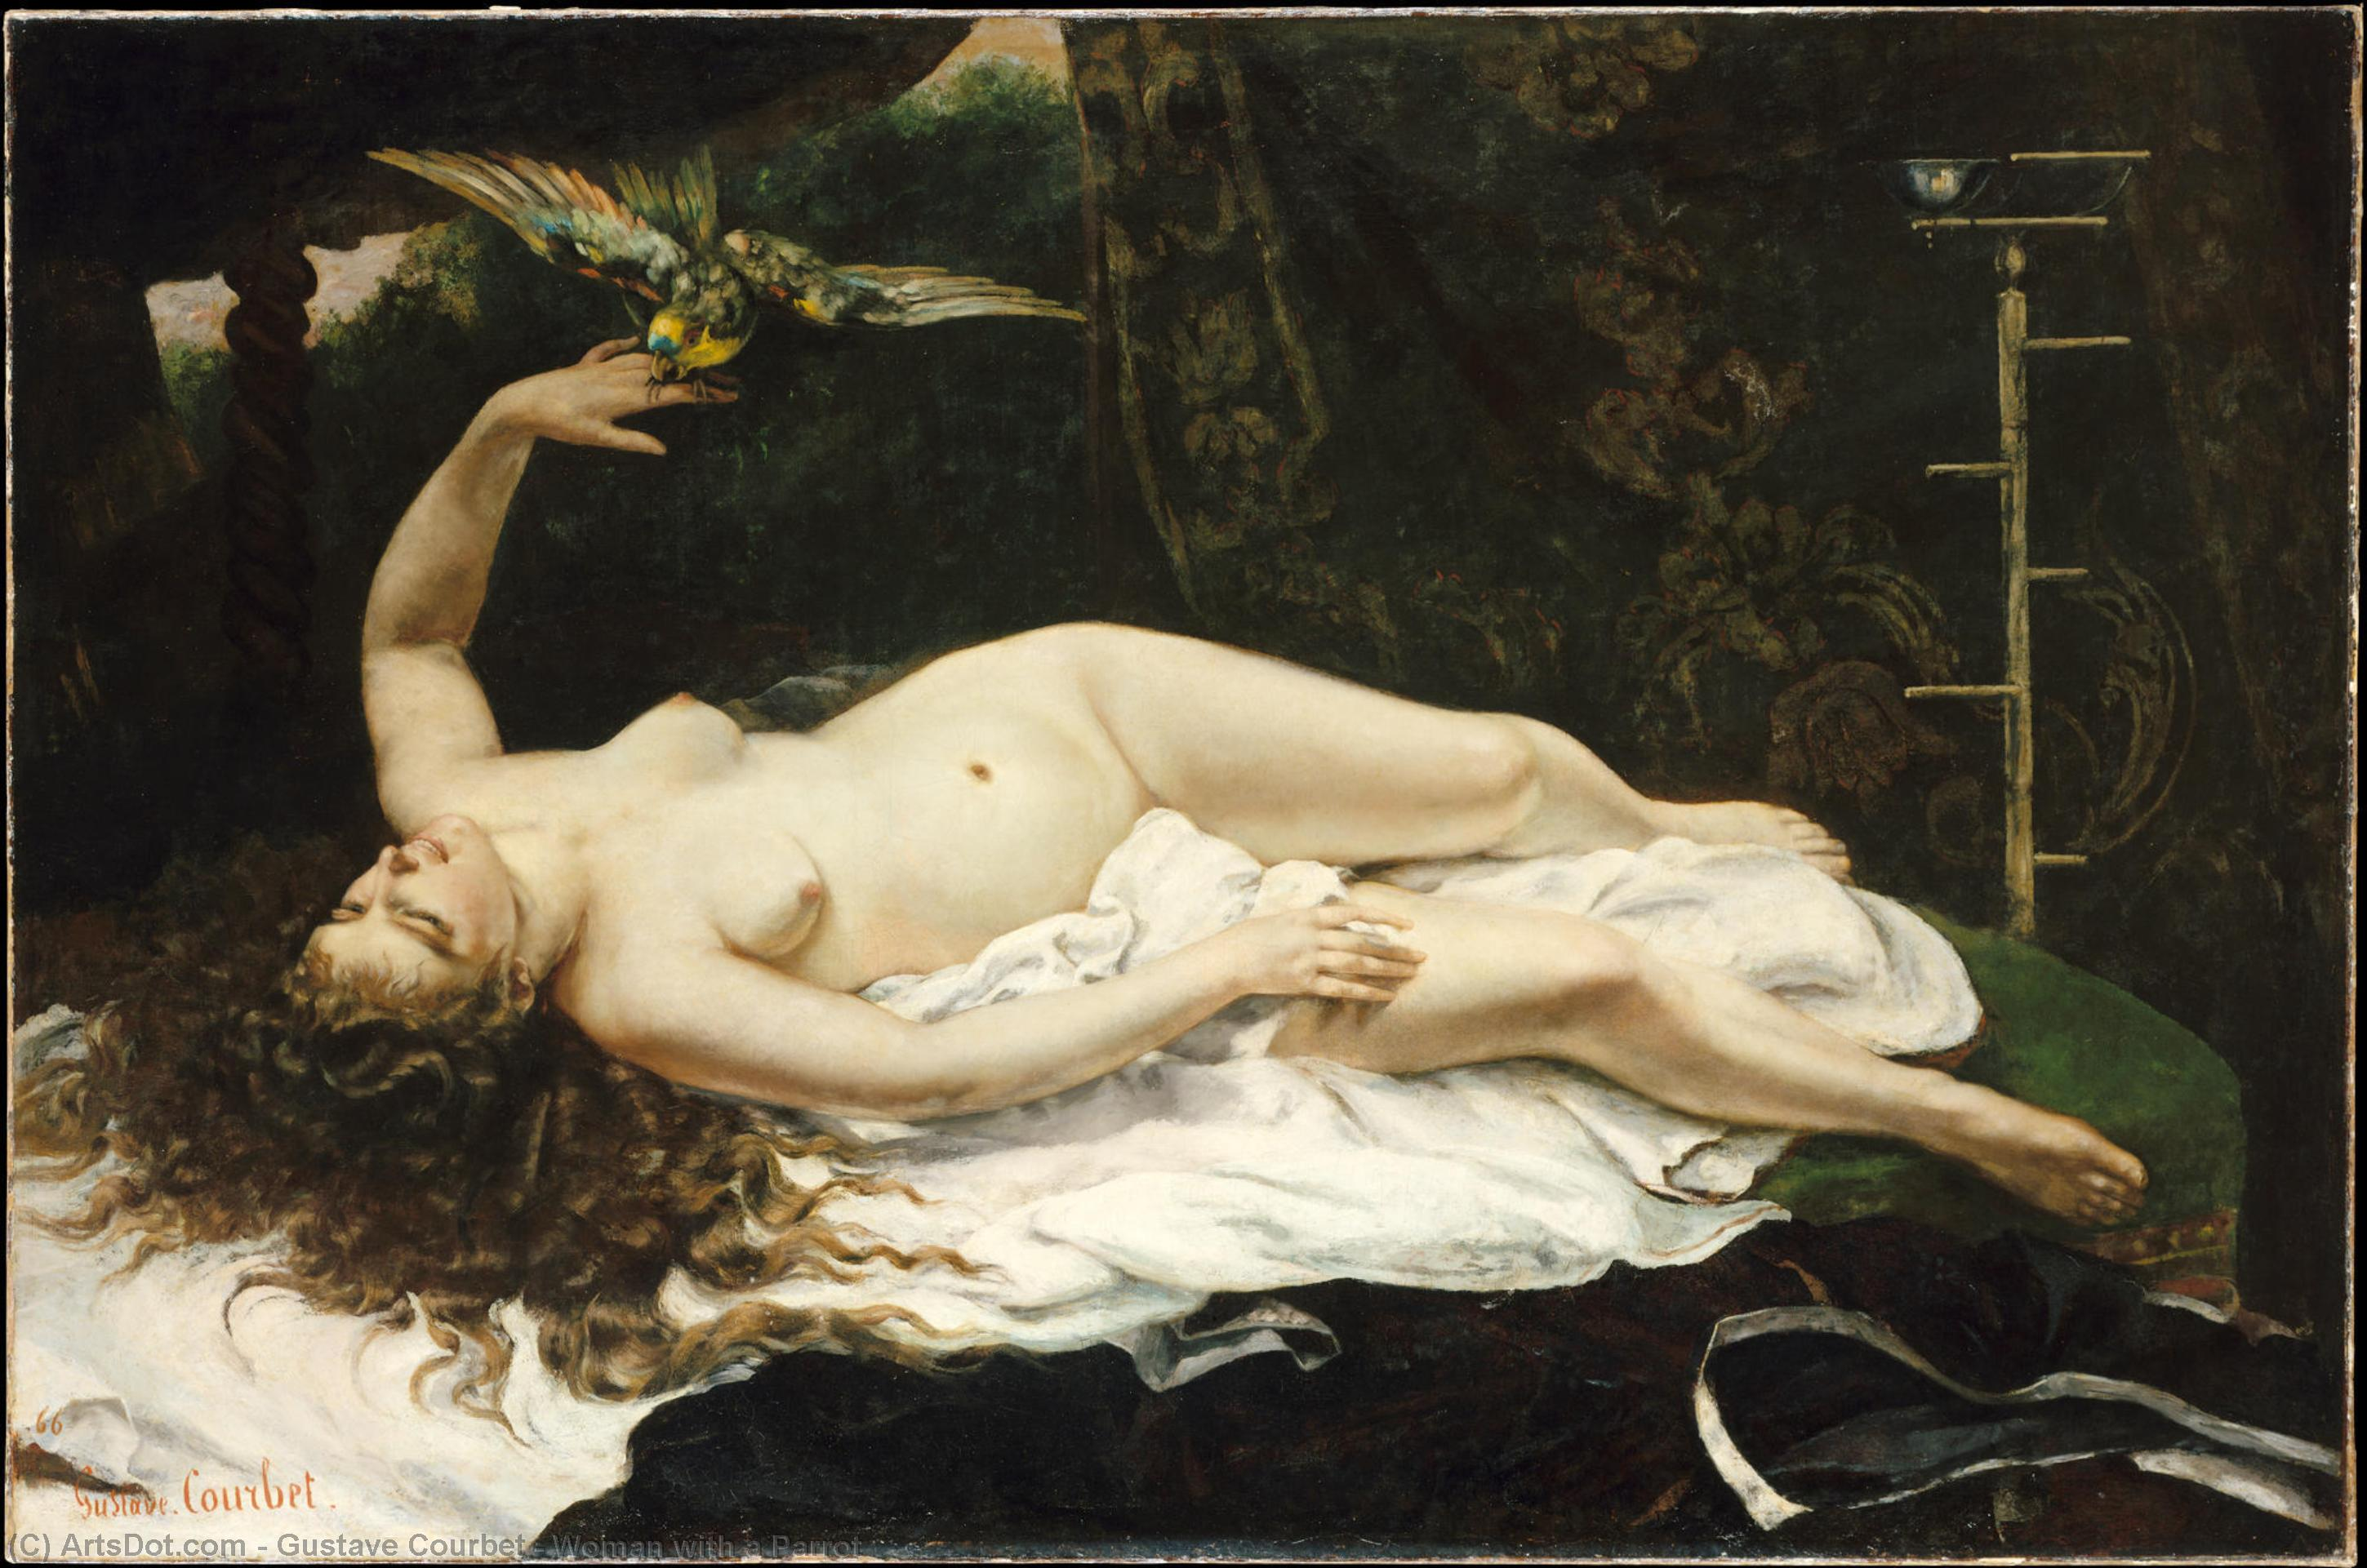 Order Painting Copy : Woman with a Parrot, 1866 by Gustave Courbet (1819-1877, France) | ArtsDot.com